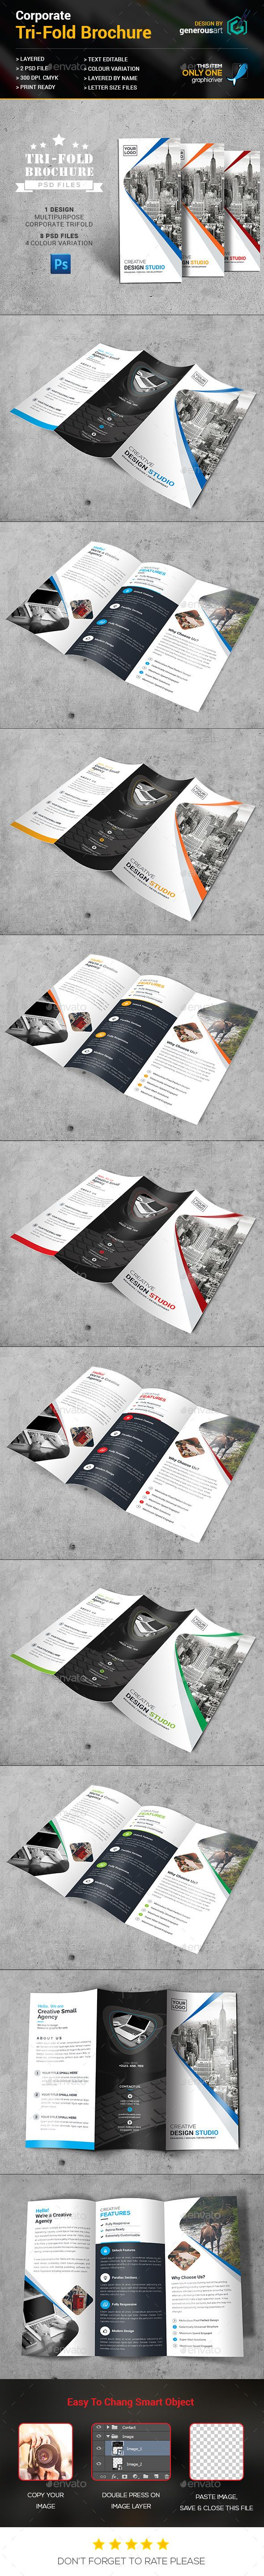 Tri-Fold Brochure Template PSD #design Download: http://graphicriver.net/item/trifold-brochure/14241378?ref=ksioks